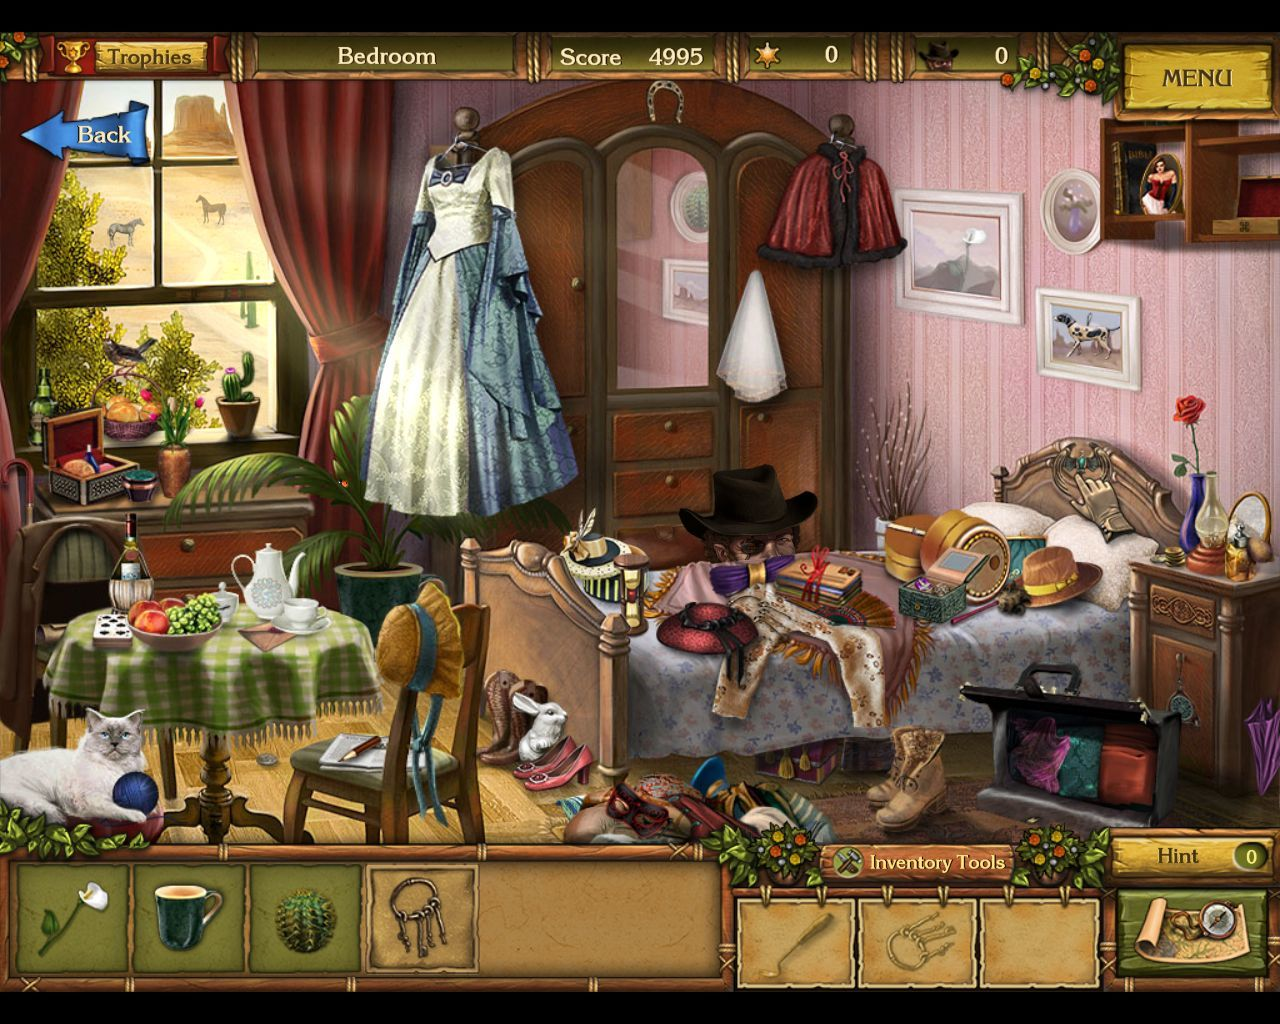 Golden Trails: The New Western Rush Macintosh Mary Stuart Bedroom - Black hat cowboy appears (behind bed) shoot him for hints